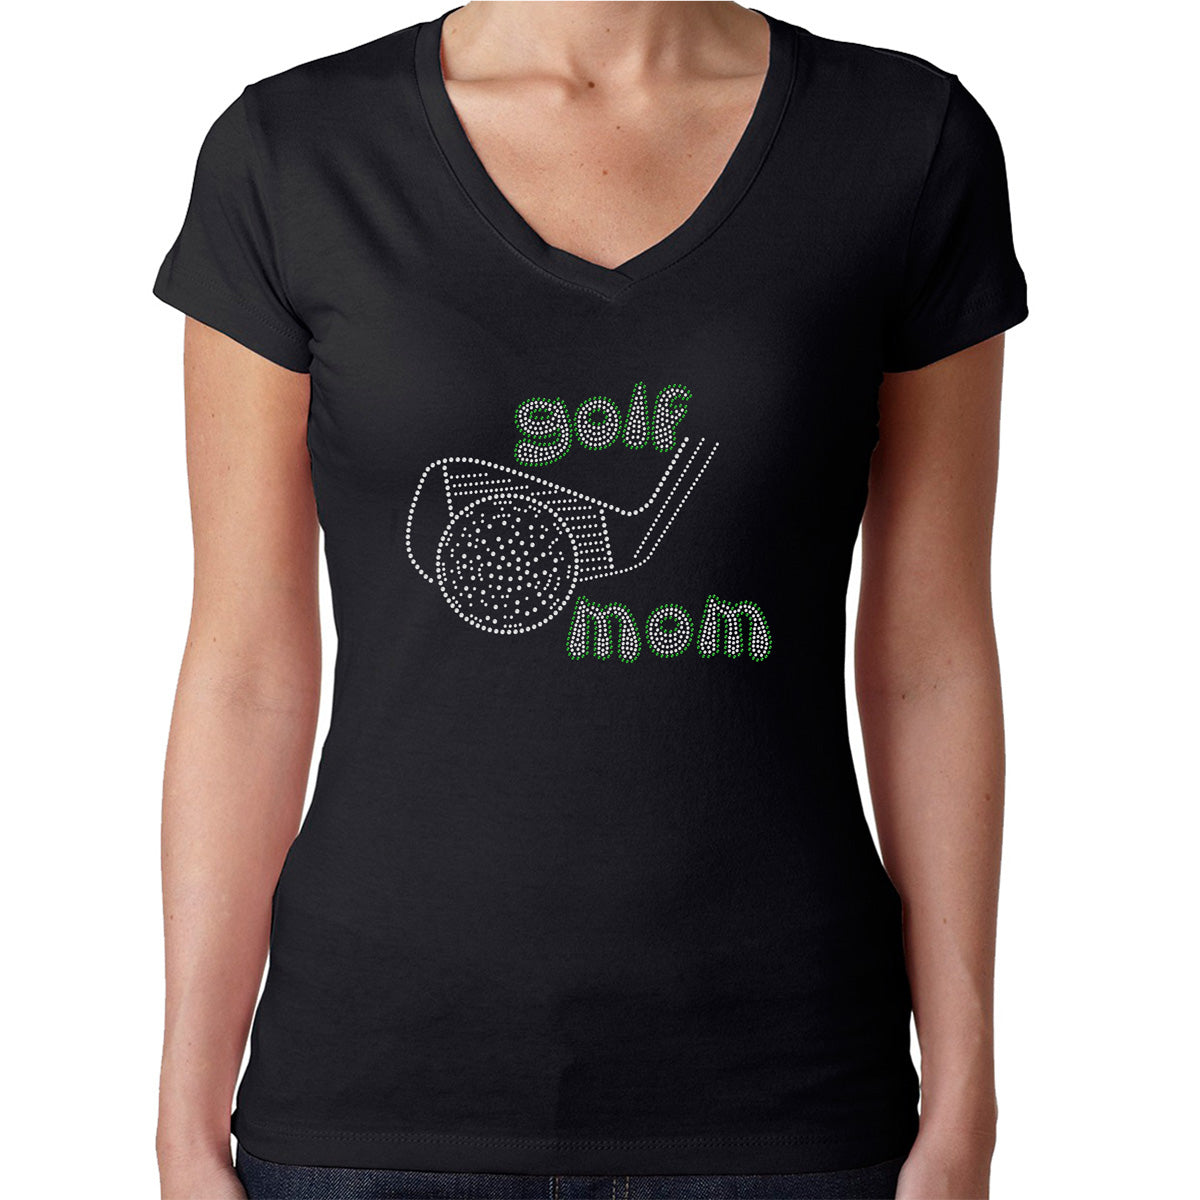 Womens T-Shirt Rhinestone Bling Black Fitted Tee Golf Mom Sparkle White Green